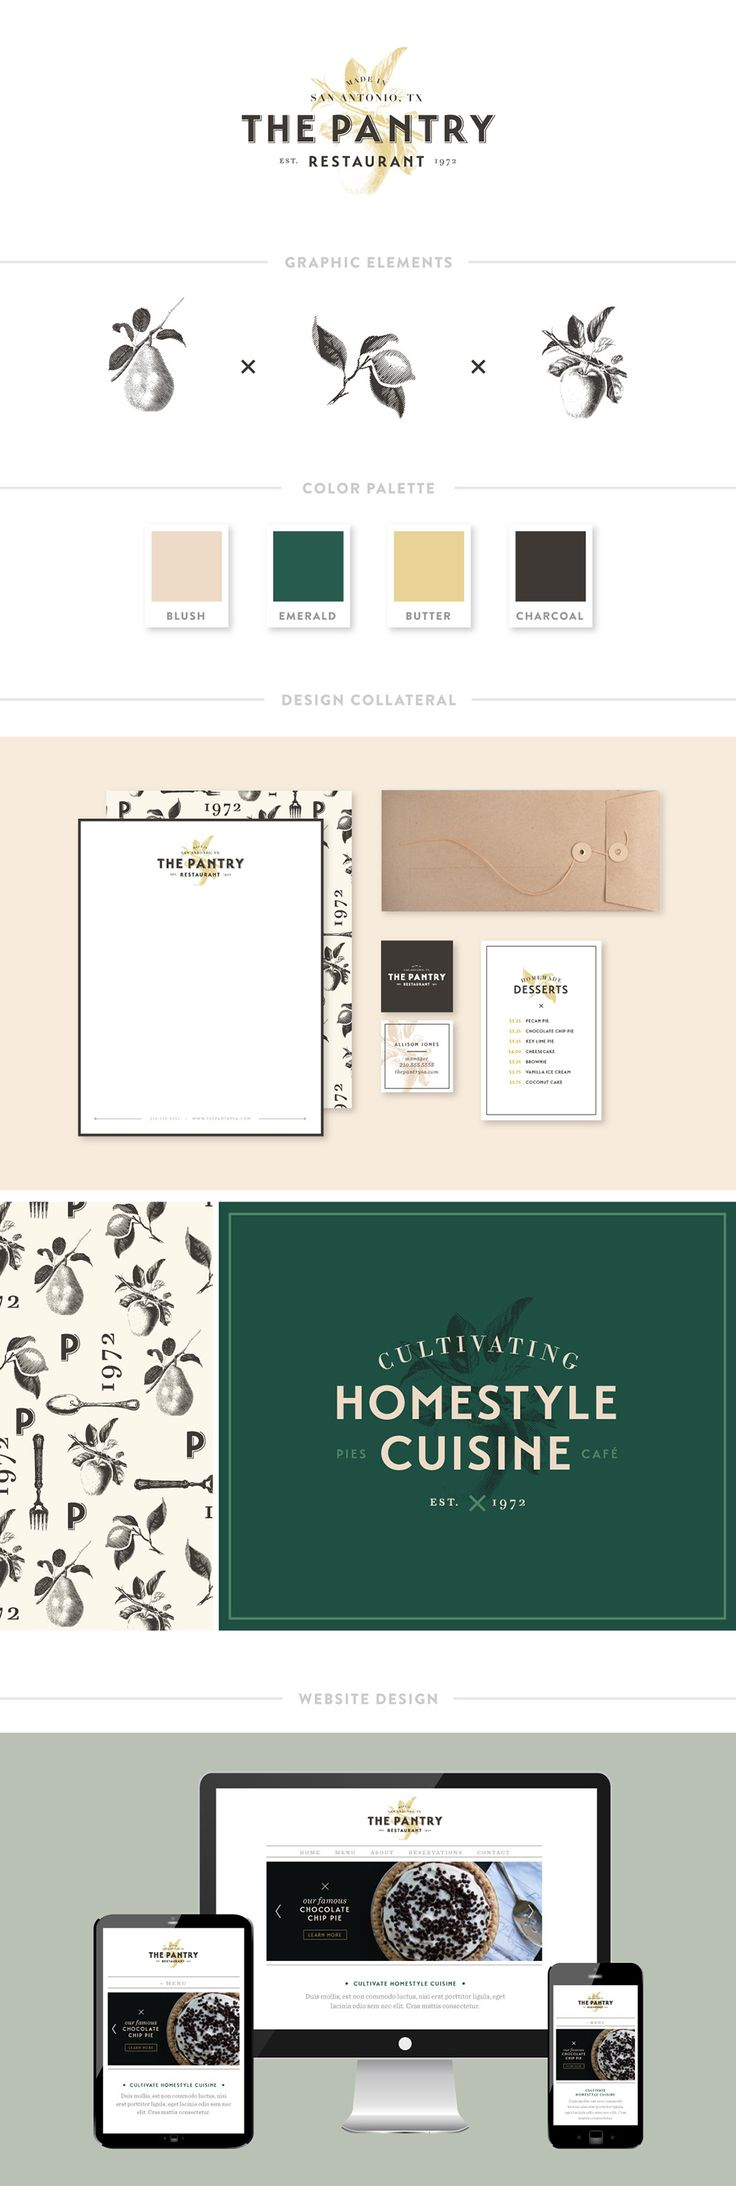 The Pantry Restaurant Branding